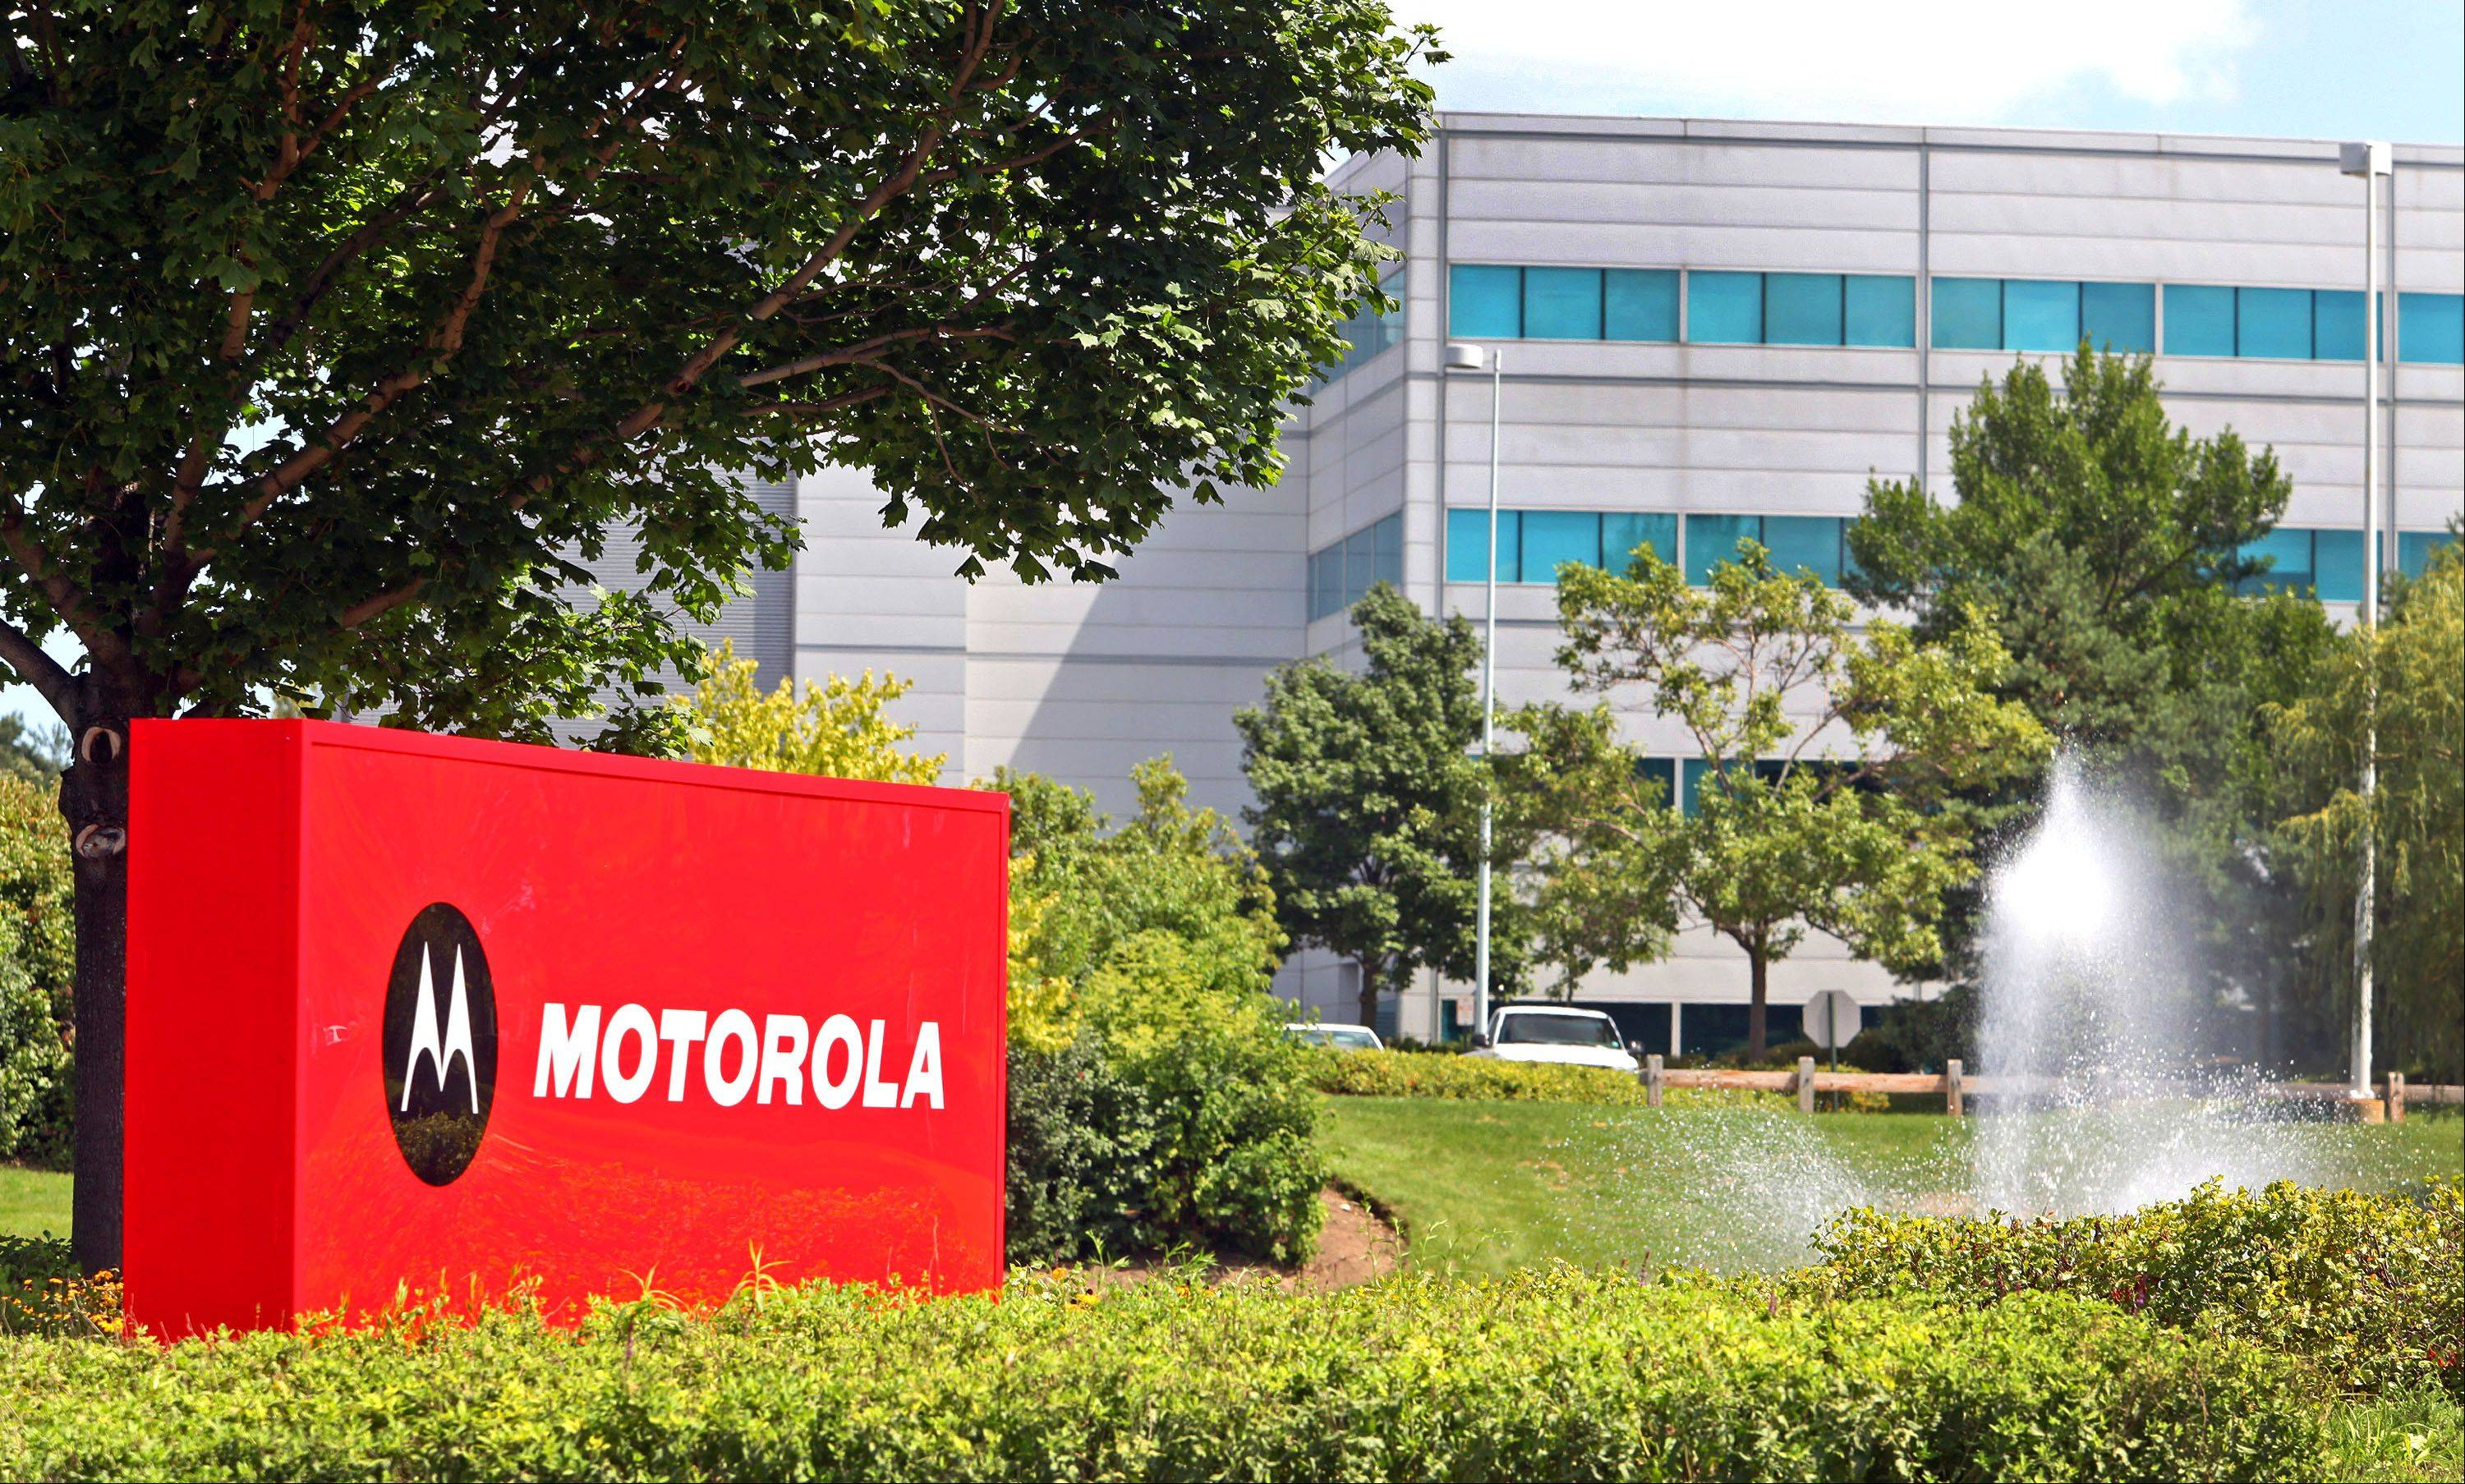 Motorola Mobility will be moving out of its headquarters in Libertyville. Photographer: Tim Boyle/Bloomberg